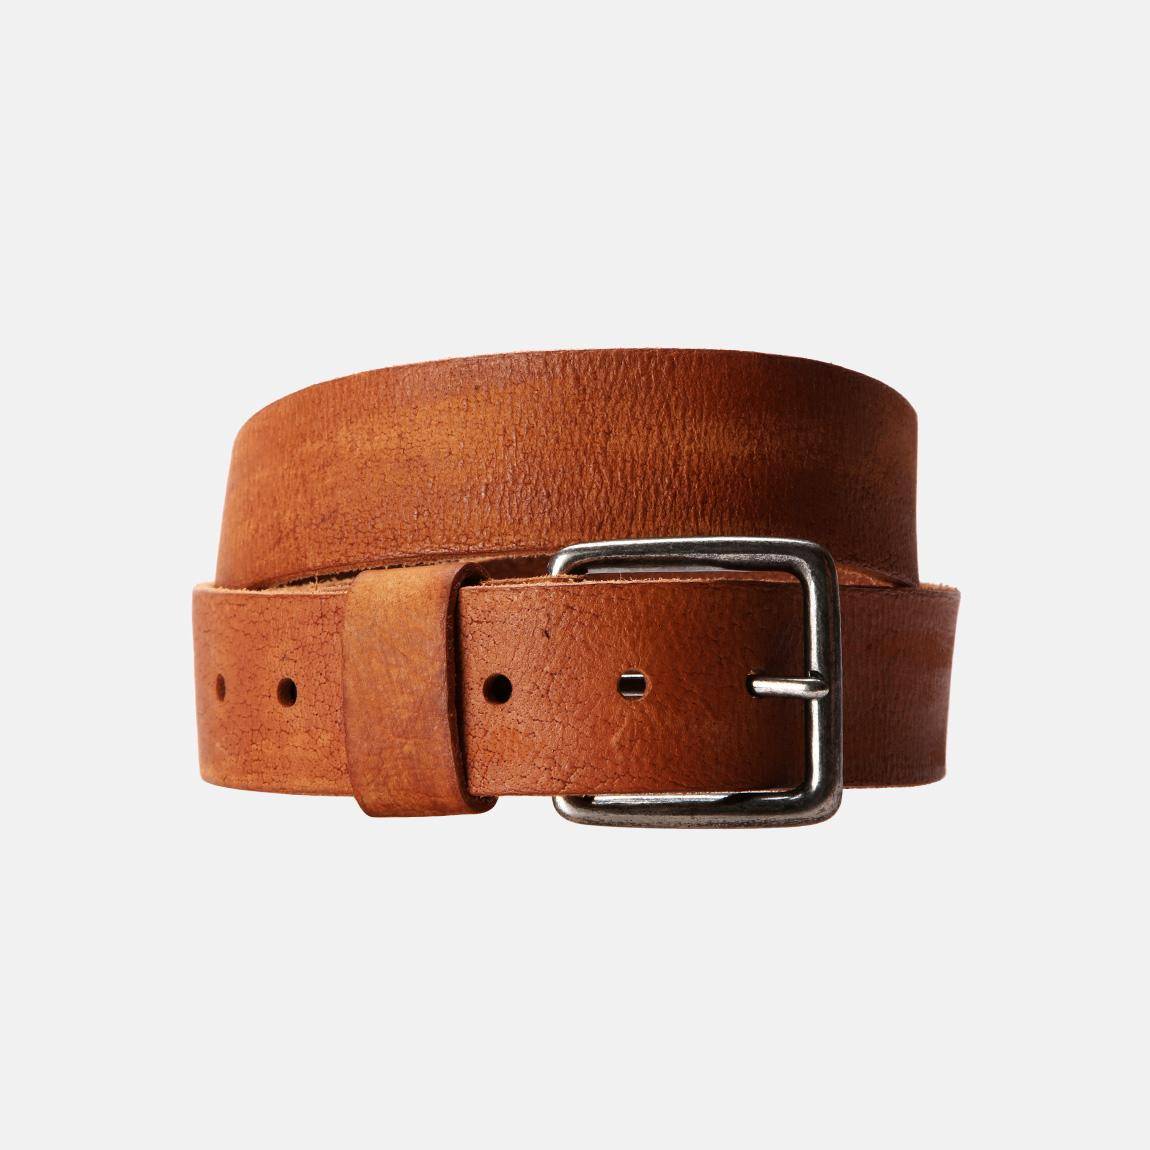 Our Light Brown Leather Belt is made from double shoulder cowhide leather. This leather belt is a one piece belt that will not come apart as many pieced leather belts do. Our brown belts are suitable for dress or casual wear.